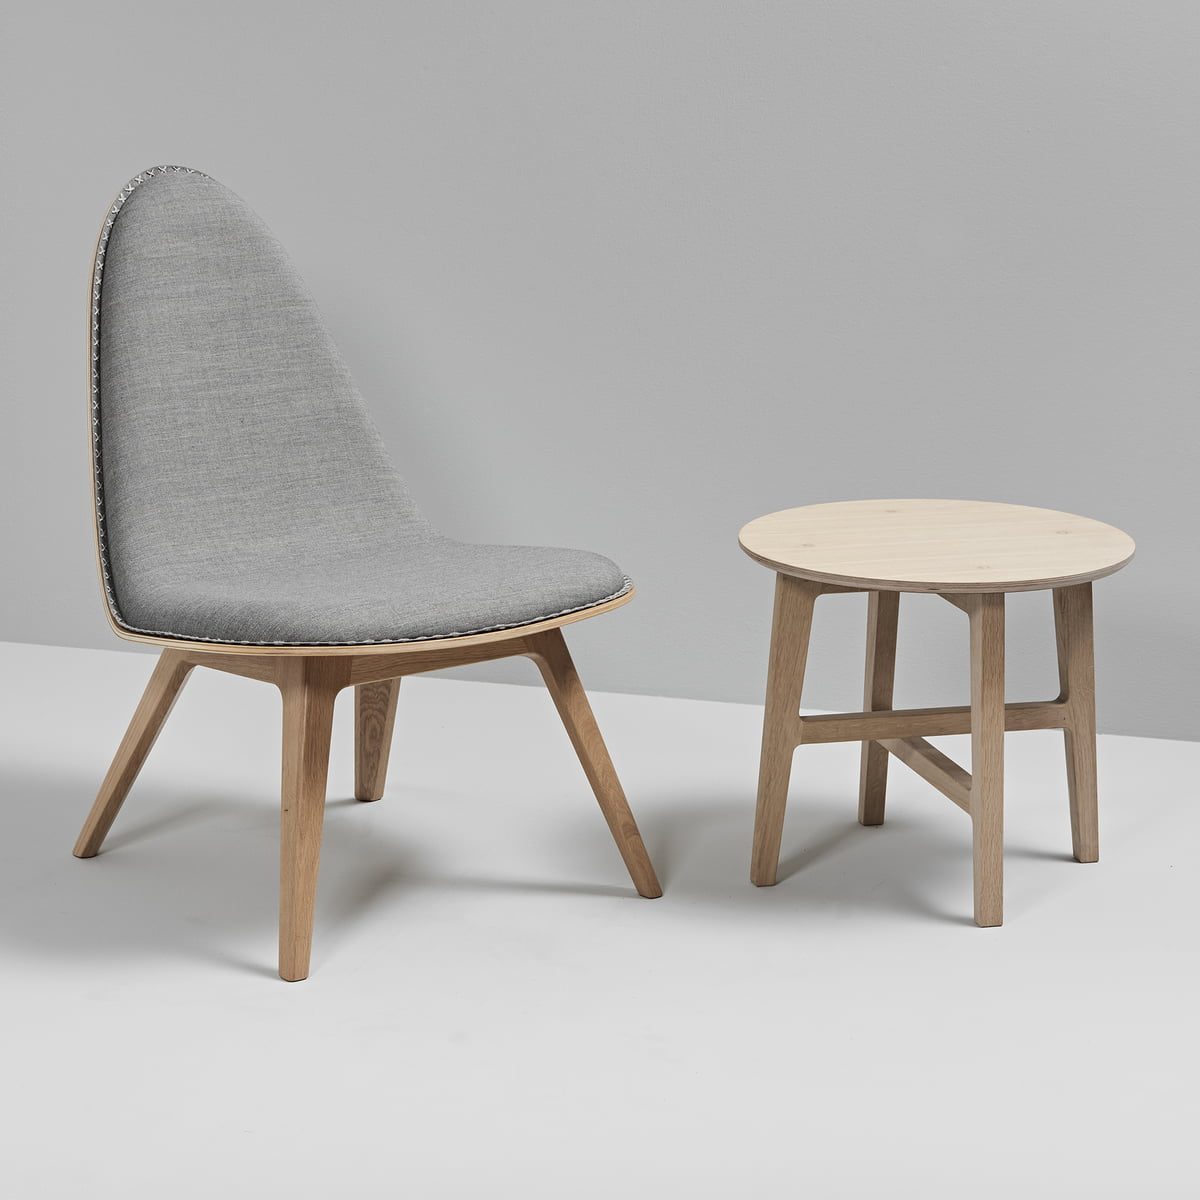 Nordic Side Table By Sack It Connox